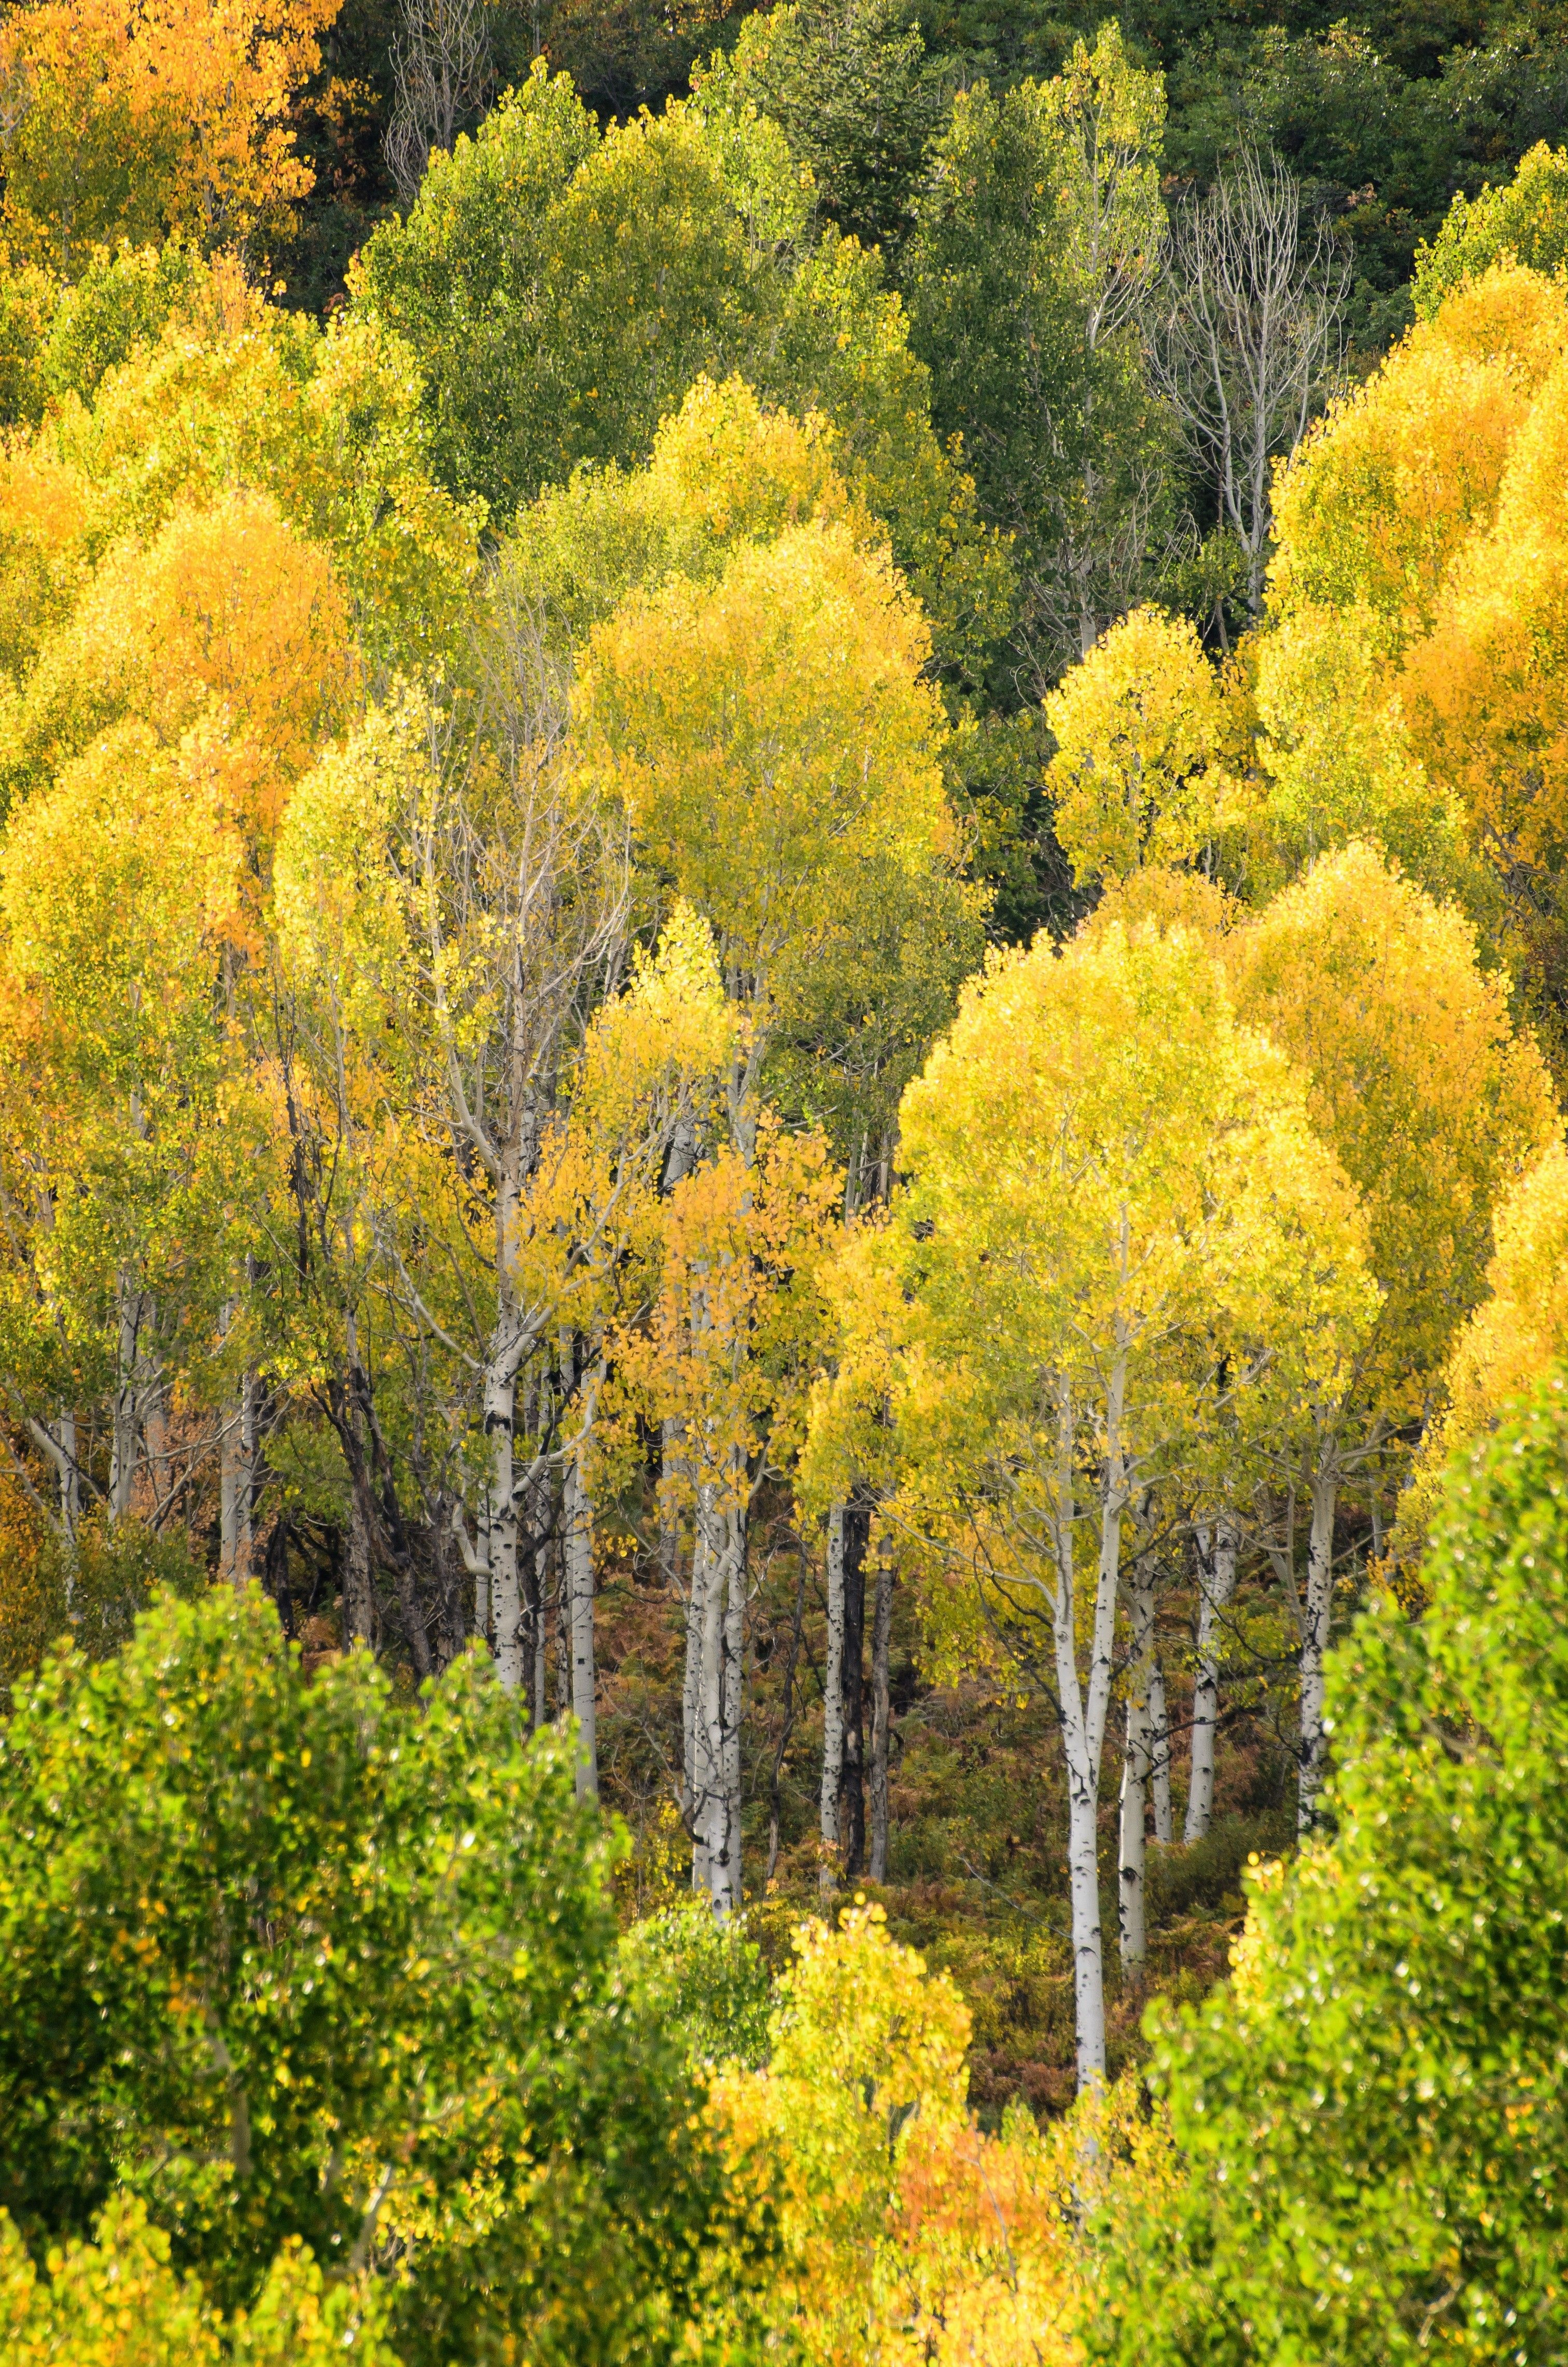 A grove of aspen trees with bright yellow leaves in the autumn.